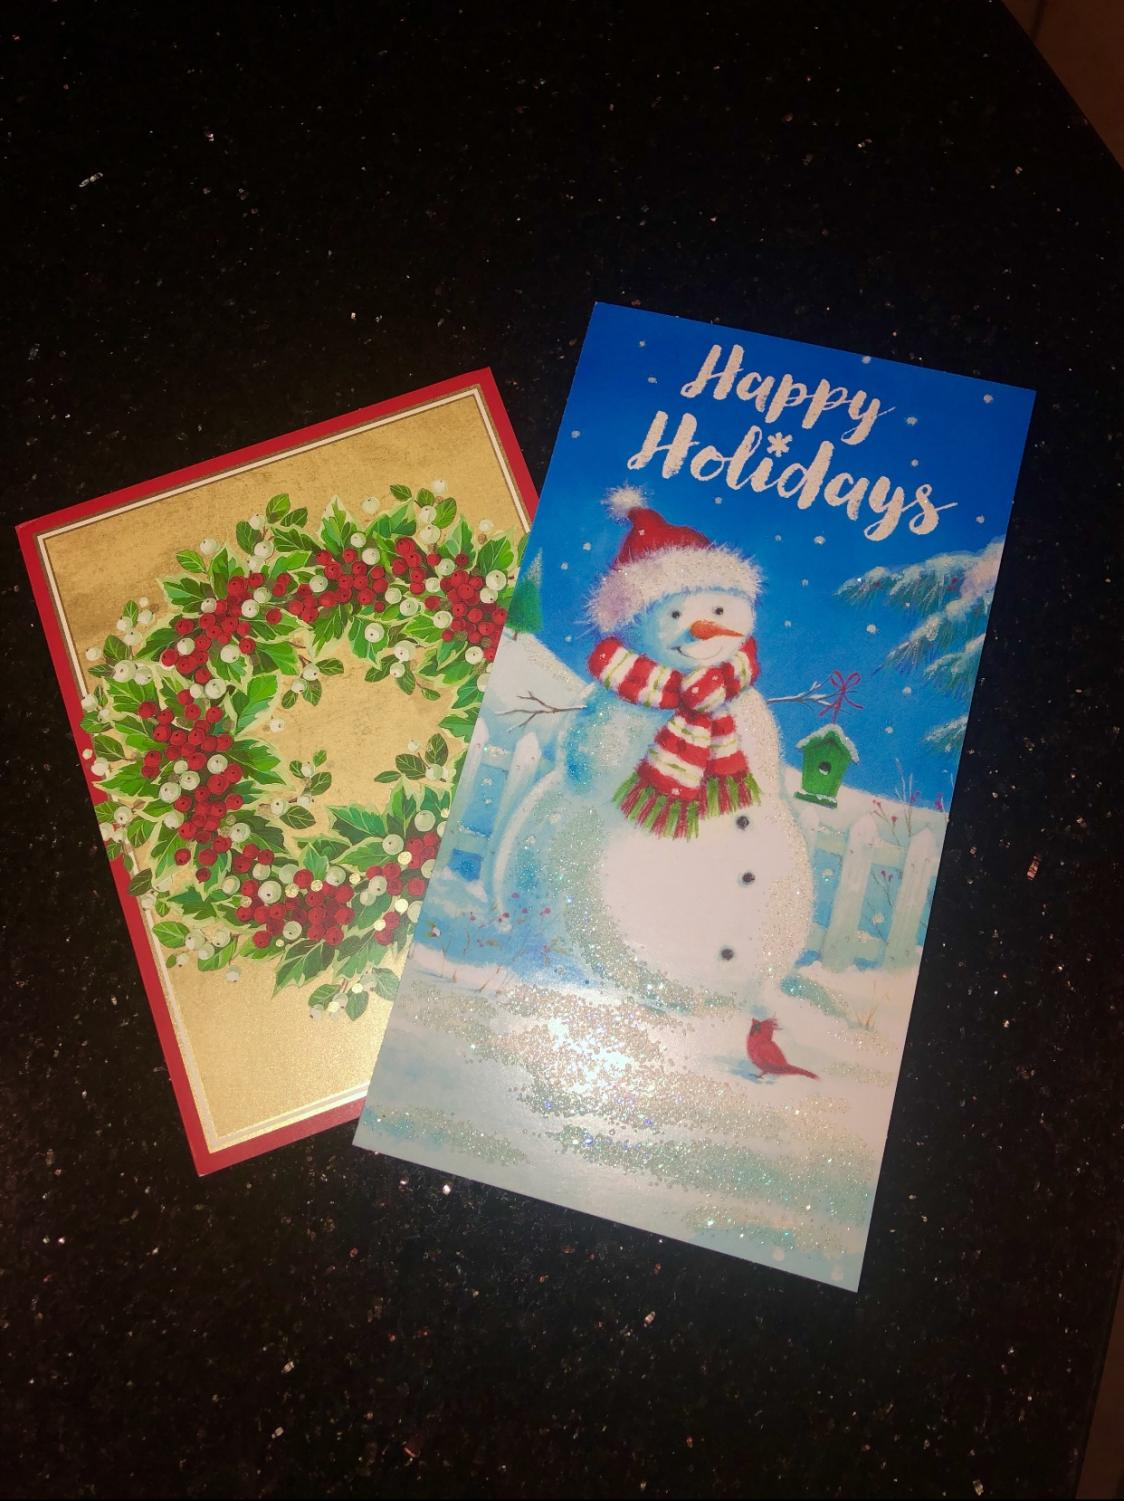 Christmas cards that families receive during the holiday season.